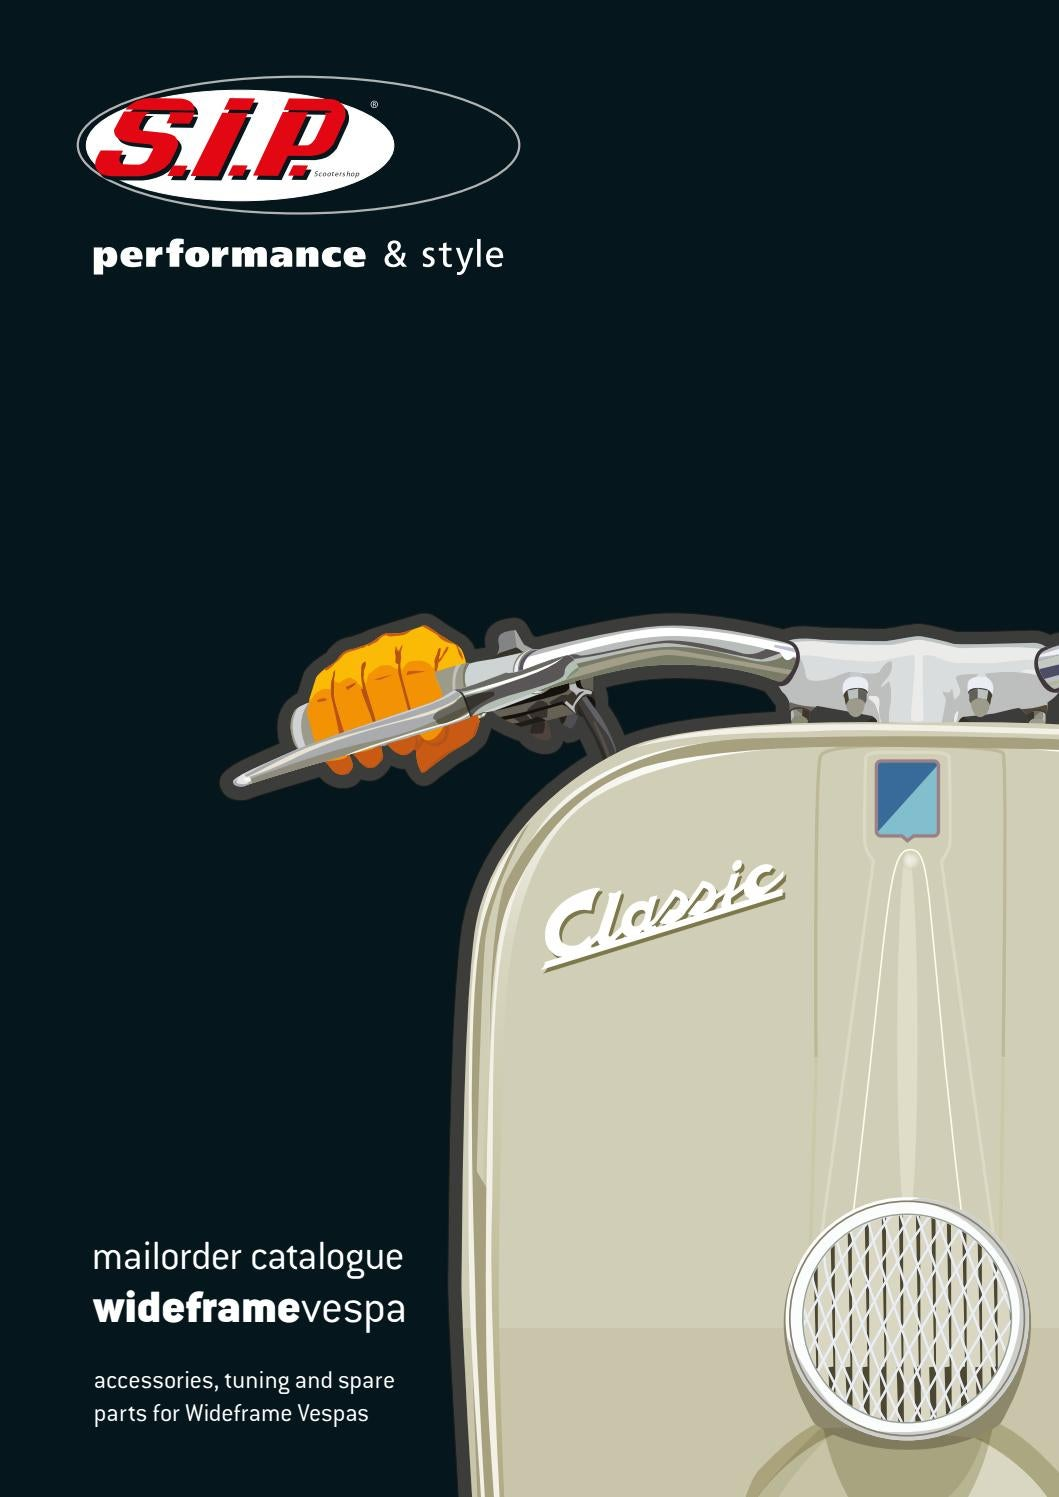 Wideframe Vespa Catalogue Sip Scootershop 2018 By Gl Wiring Diagram Gmbh Issuu